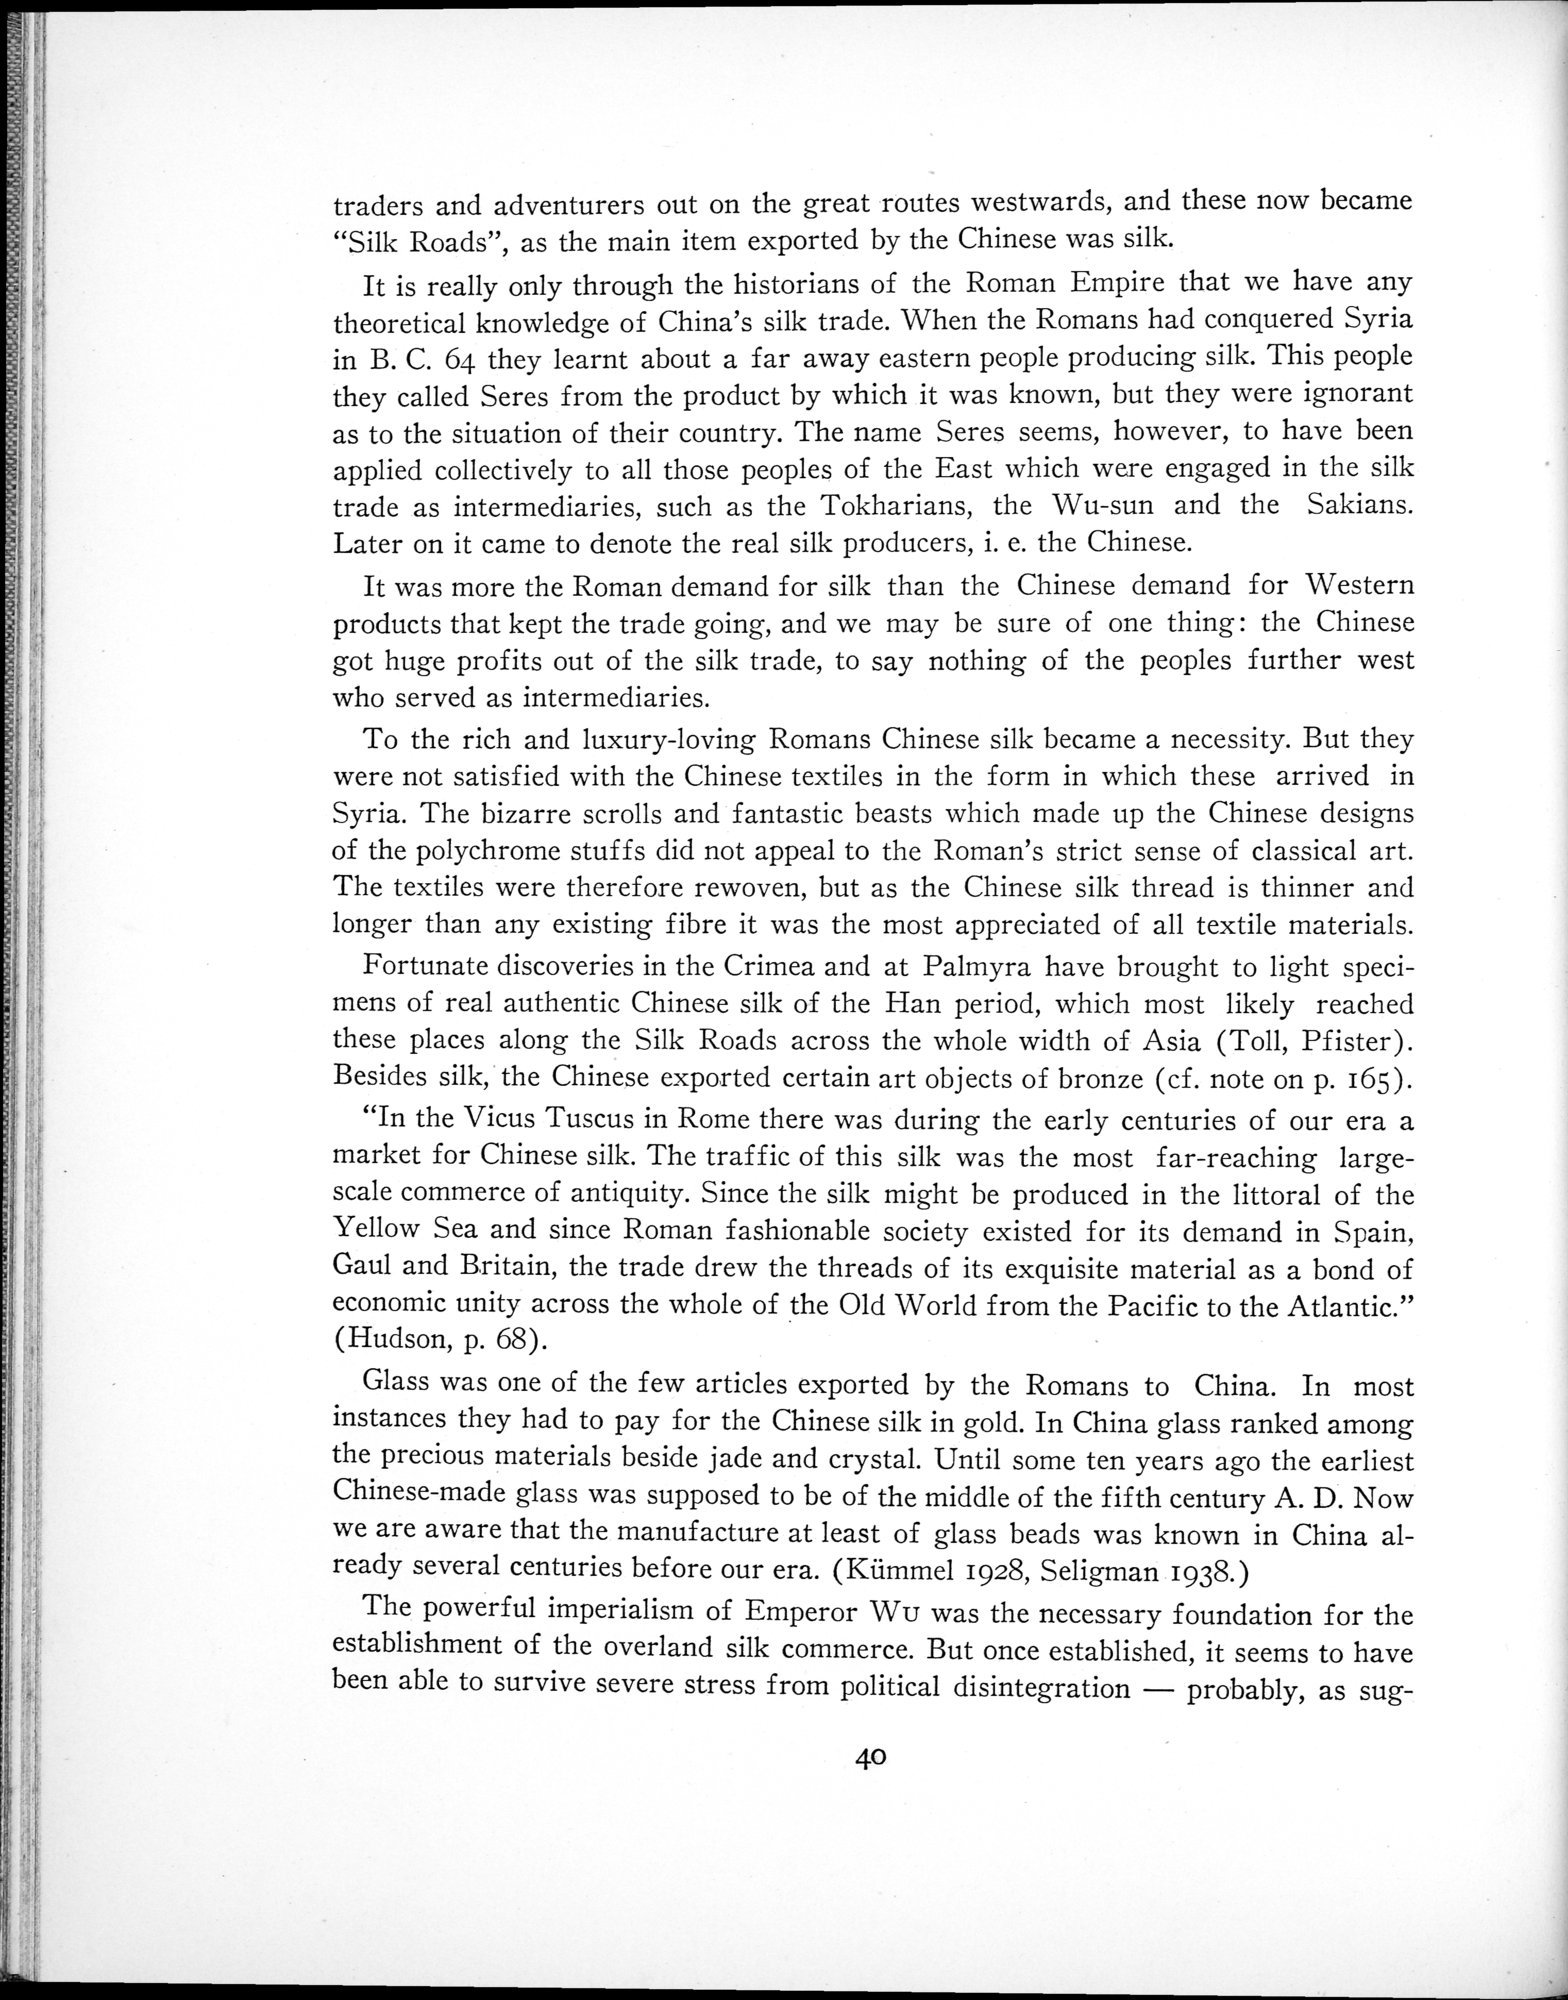 Archaeological Researches in Sinkiang : vol.1 / Page 48 (Grayscale High Resolution Image)